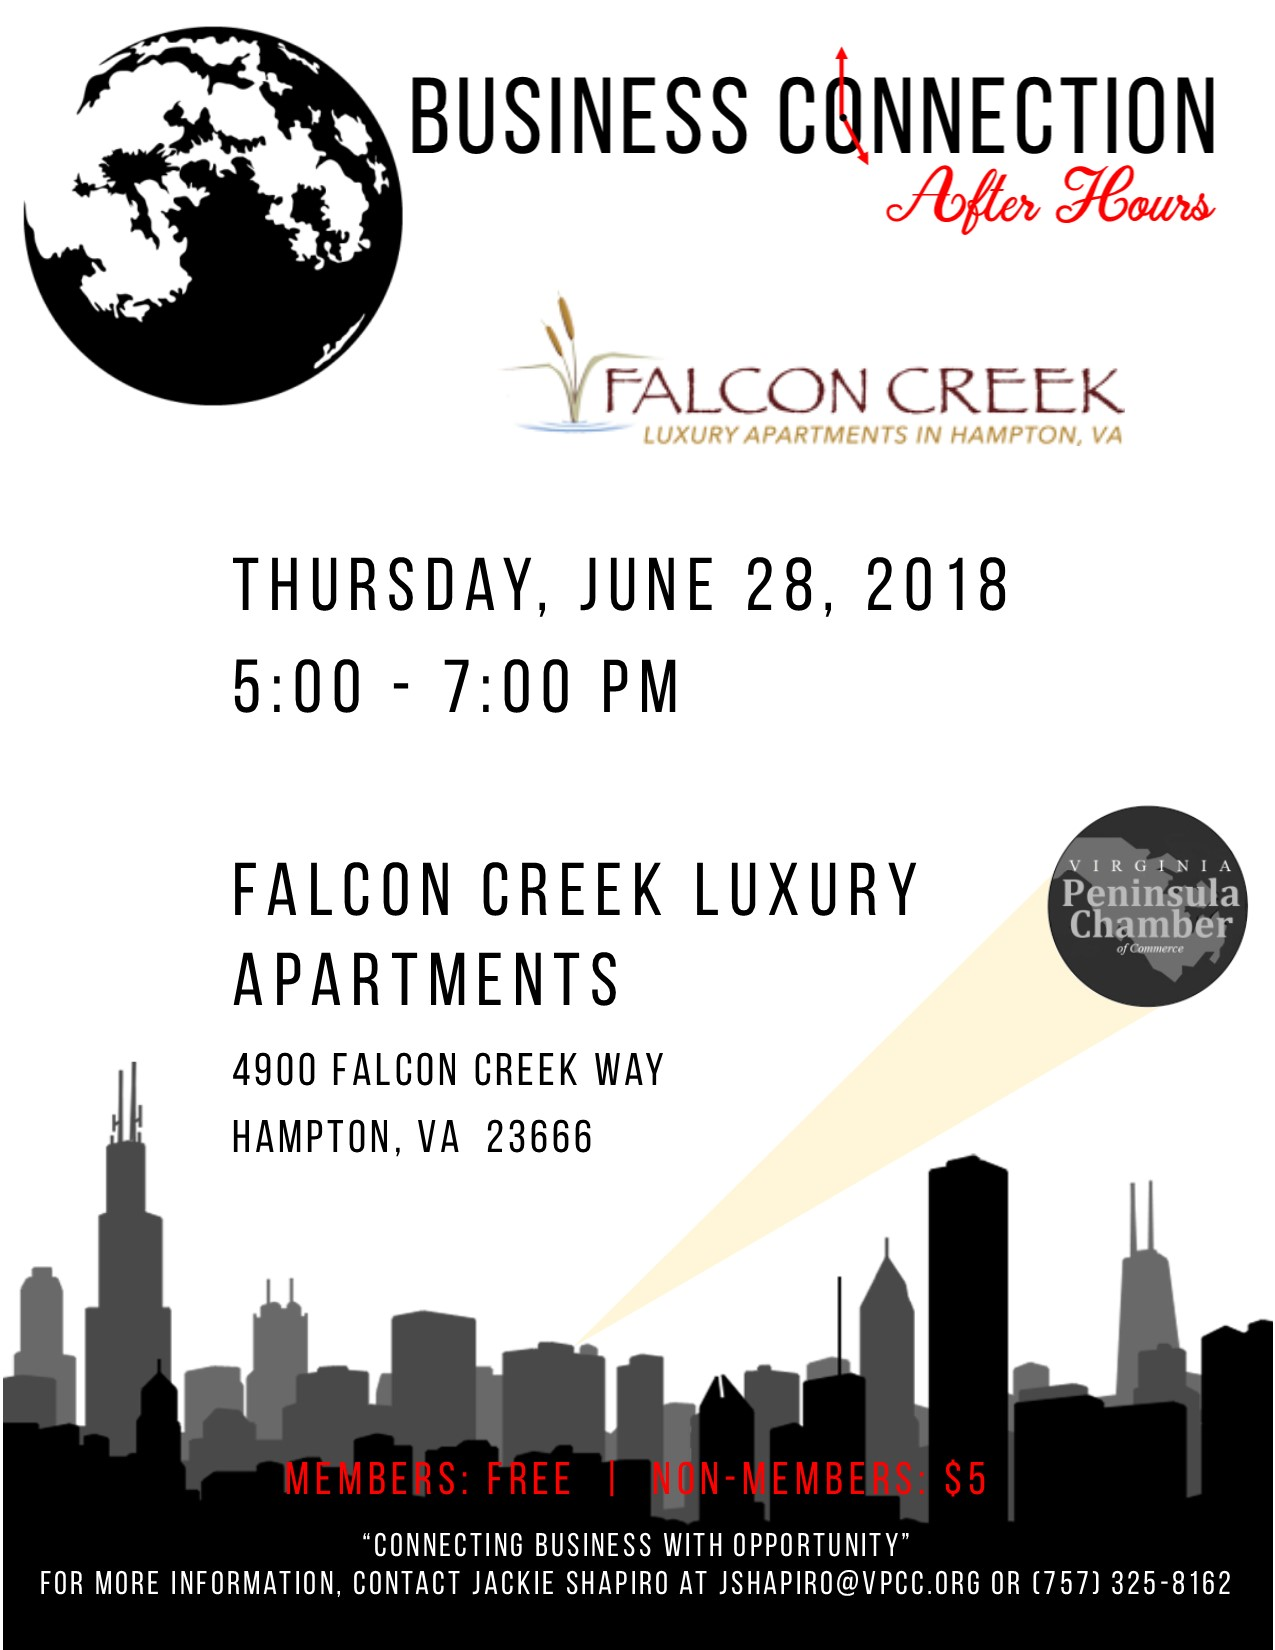 2018-BUSINESS CONNECTION AFTER HOURS-Falcon Creek-6/28/18 - Jun 28 ...